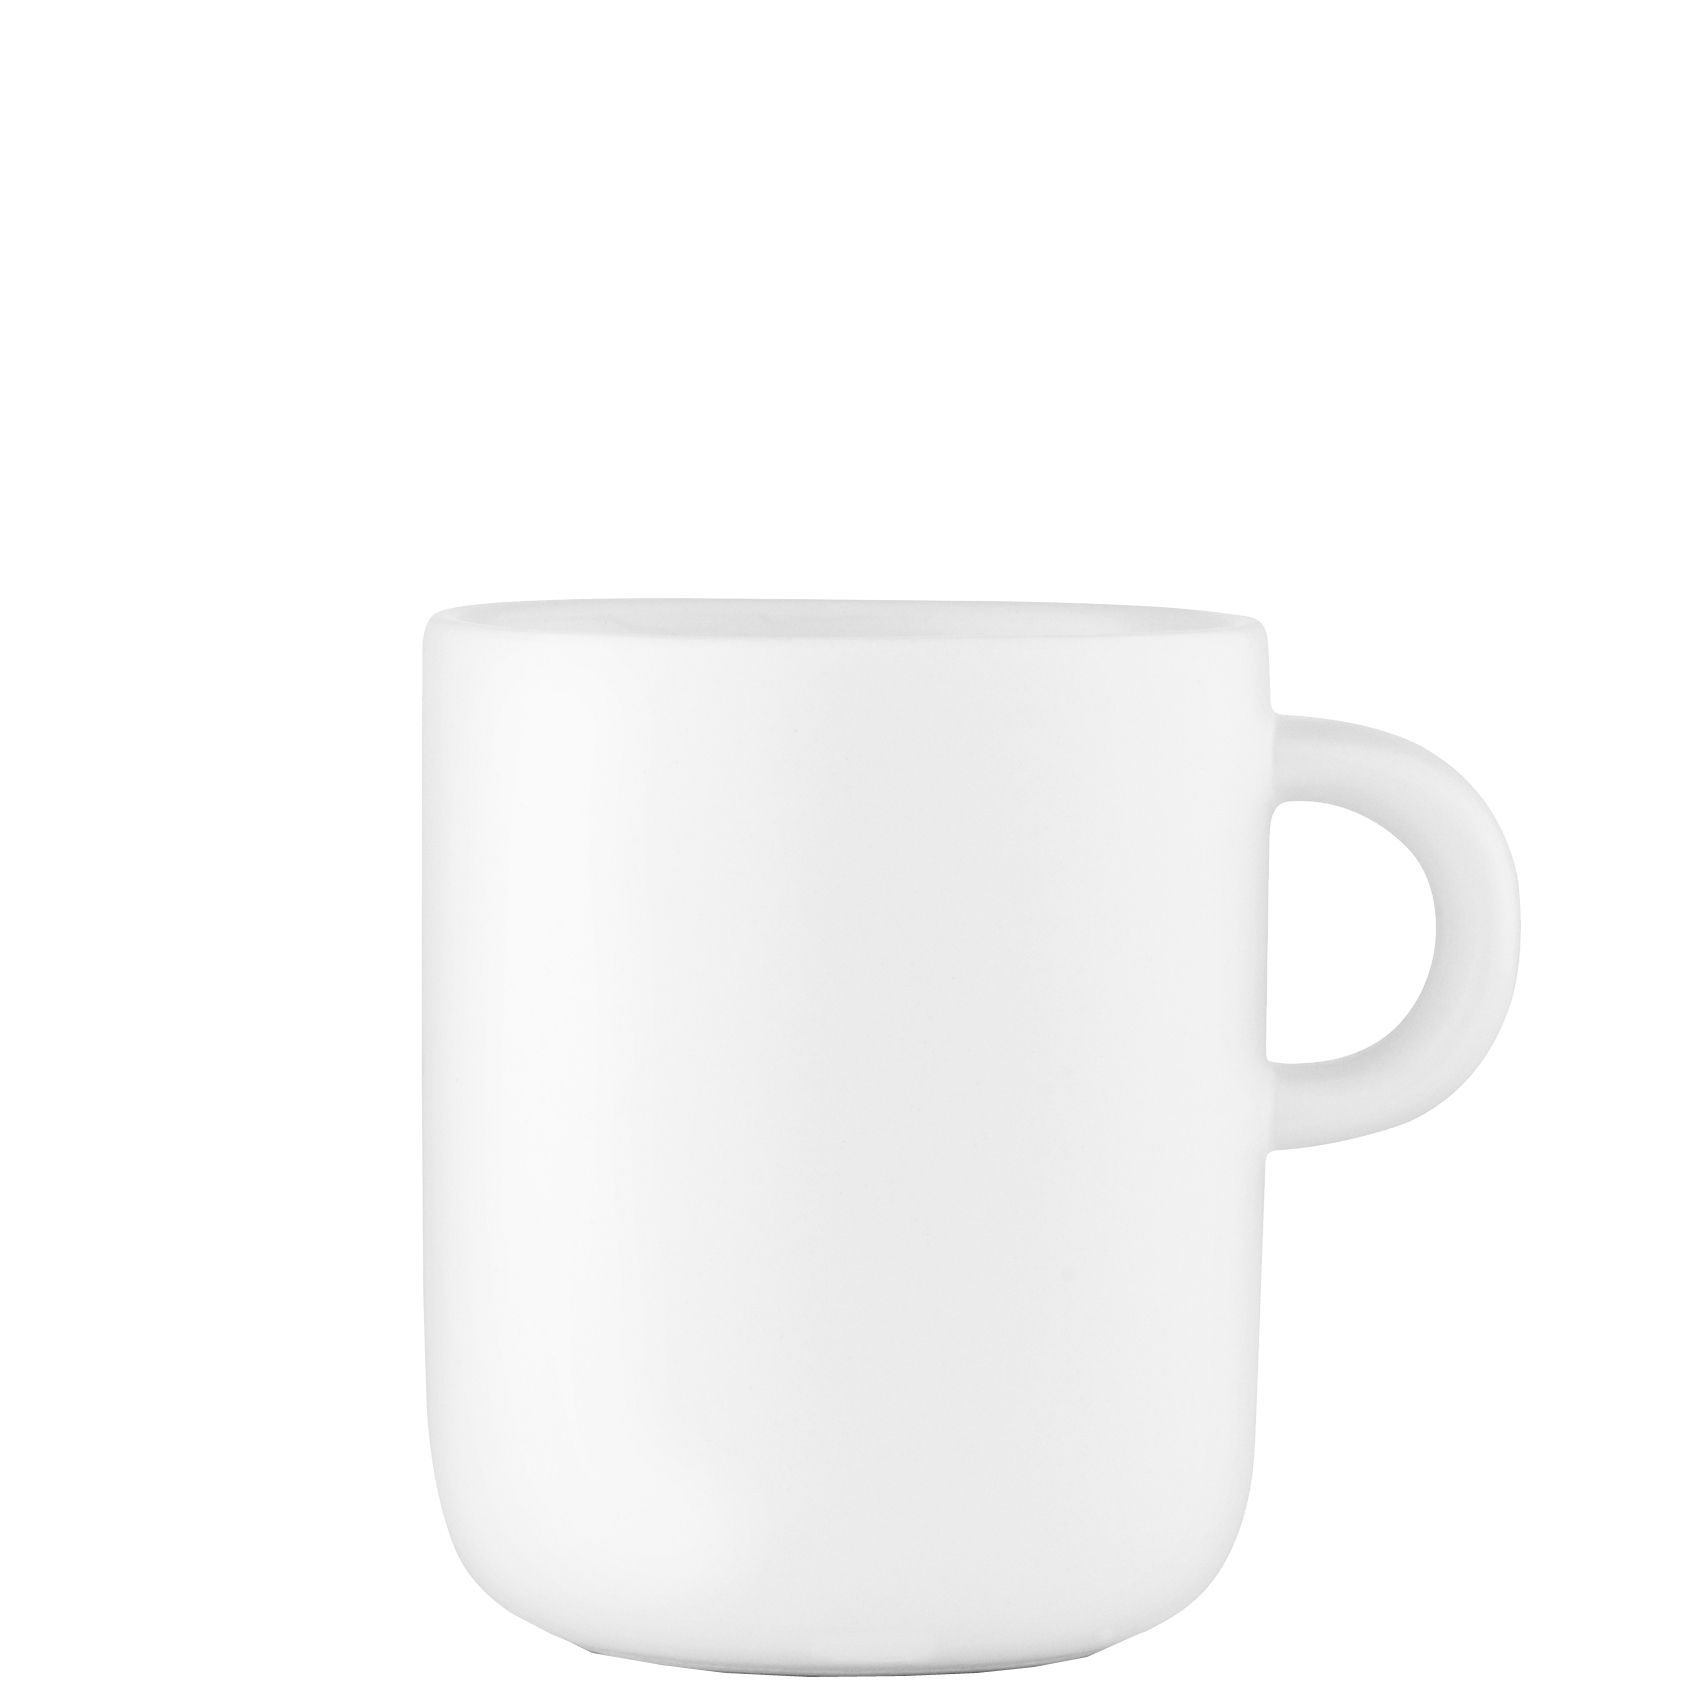 Arts de la table - Tasses et mugs - Mug Bliss / 30 cl - Normann Copenhagen - Blanc - Porcelaine